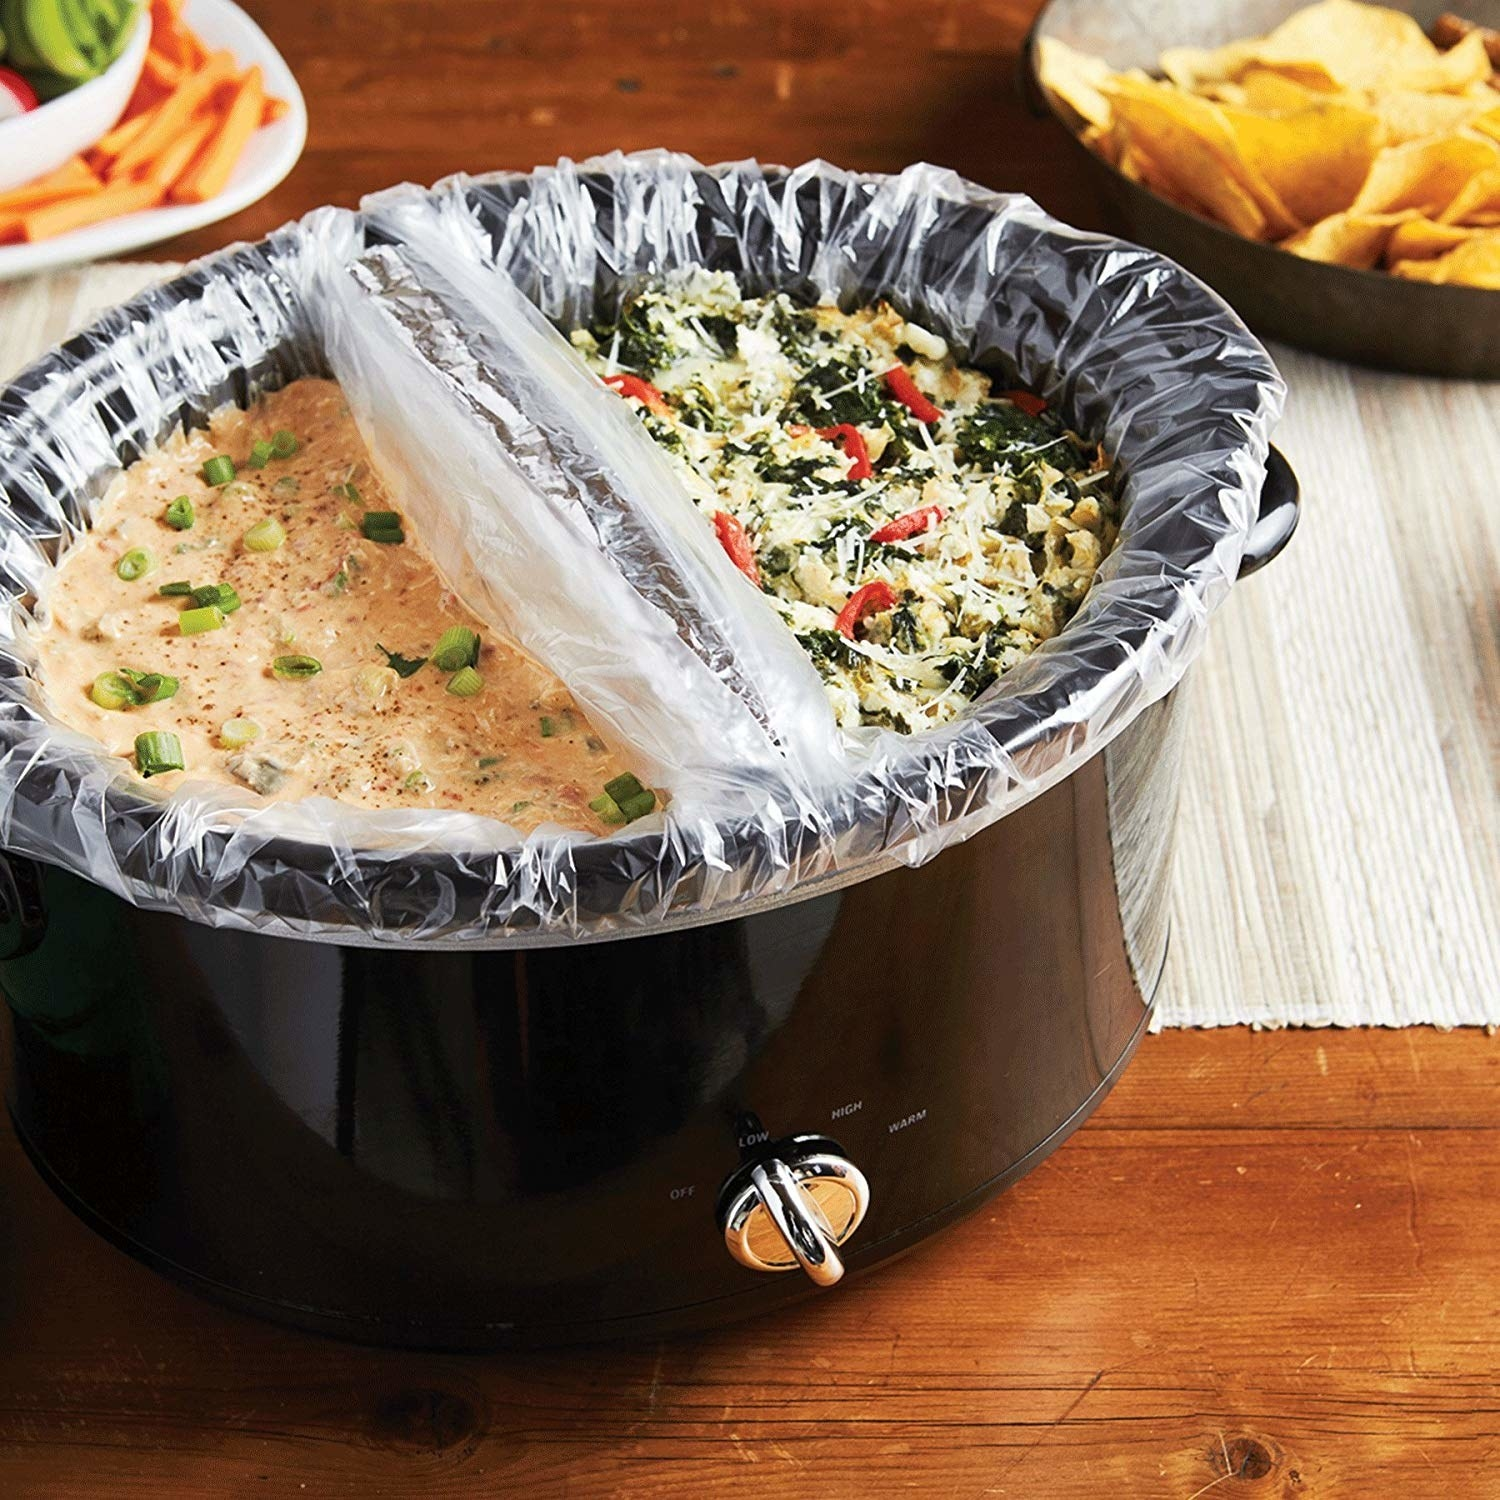 A two-compartmented slow cooker with liners on either side, filled with dips and side salads